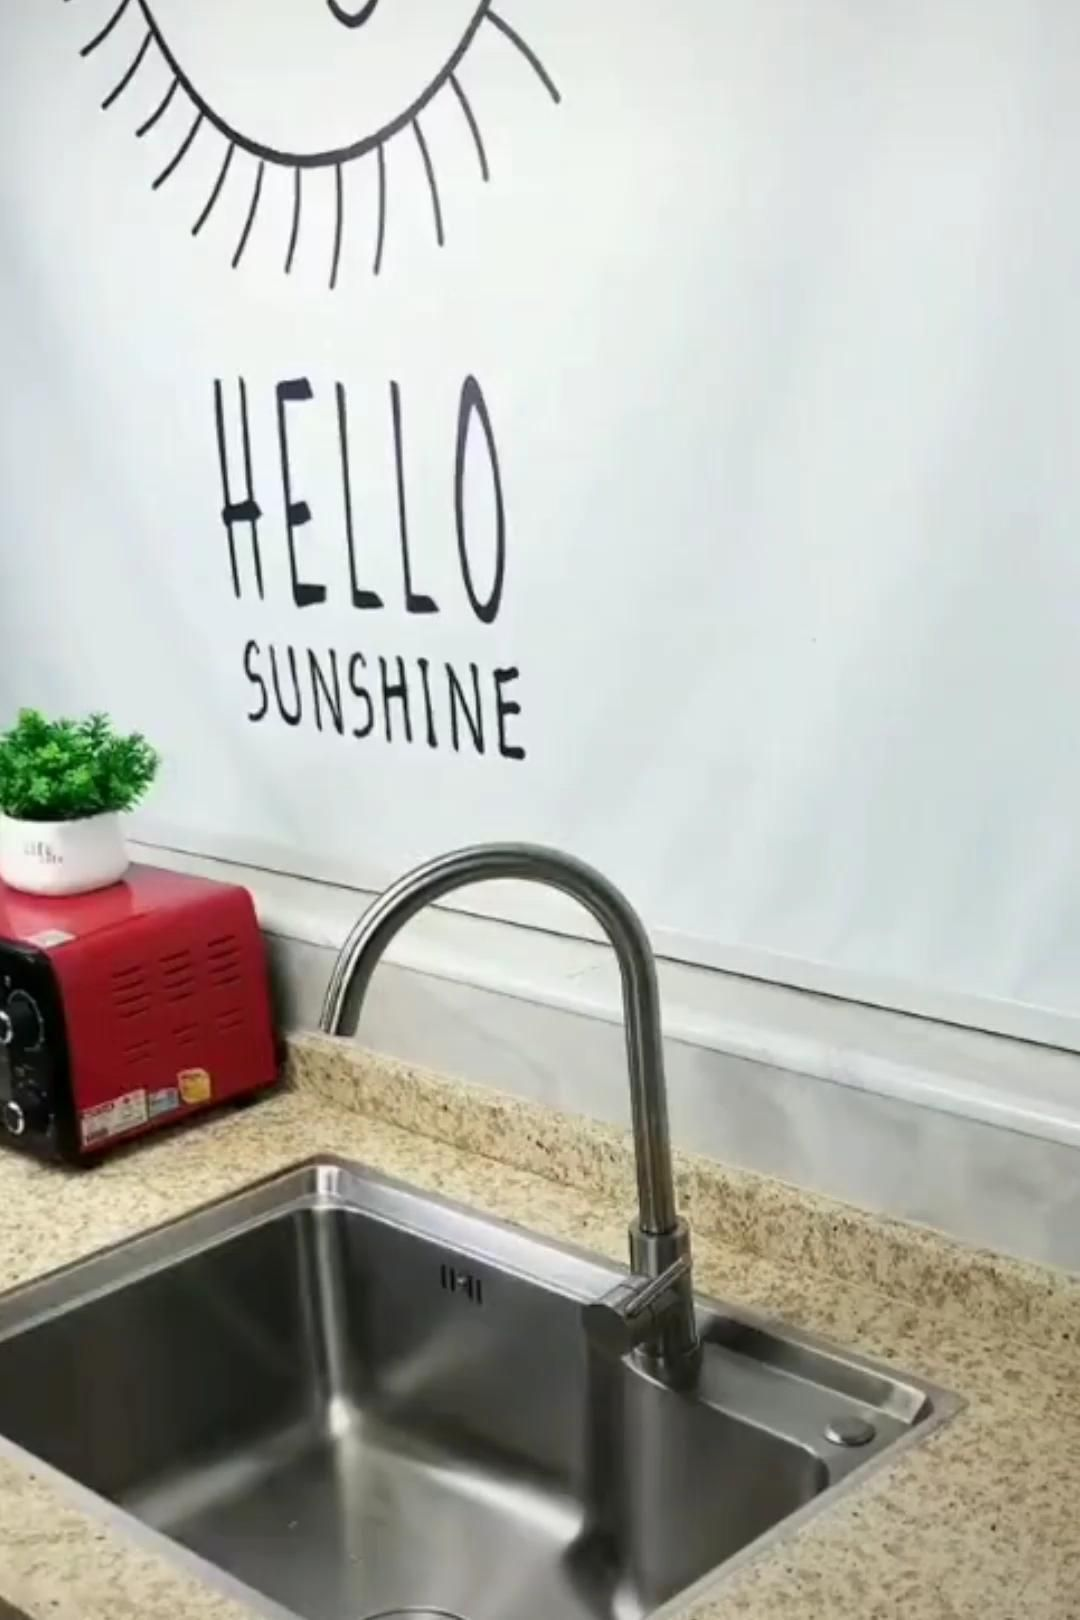 When you live in a tiny home, space becomes a luxury and doing day-to-day tasks become hard and tedious, especially in the kitchen. This is why finding a better workflow is important. Our dish rack fits right above your sink and holds all your eating essentials. Not only does it save space, but also lets your dish air dry, and all excess water drips right back into the sink. Get yours now, click the title!